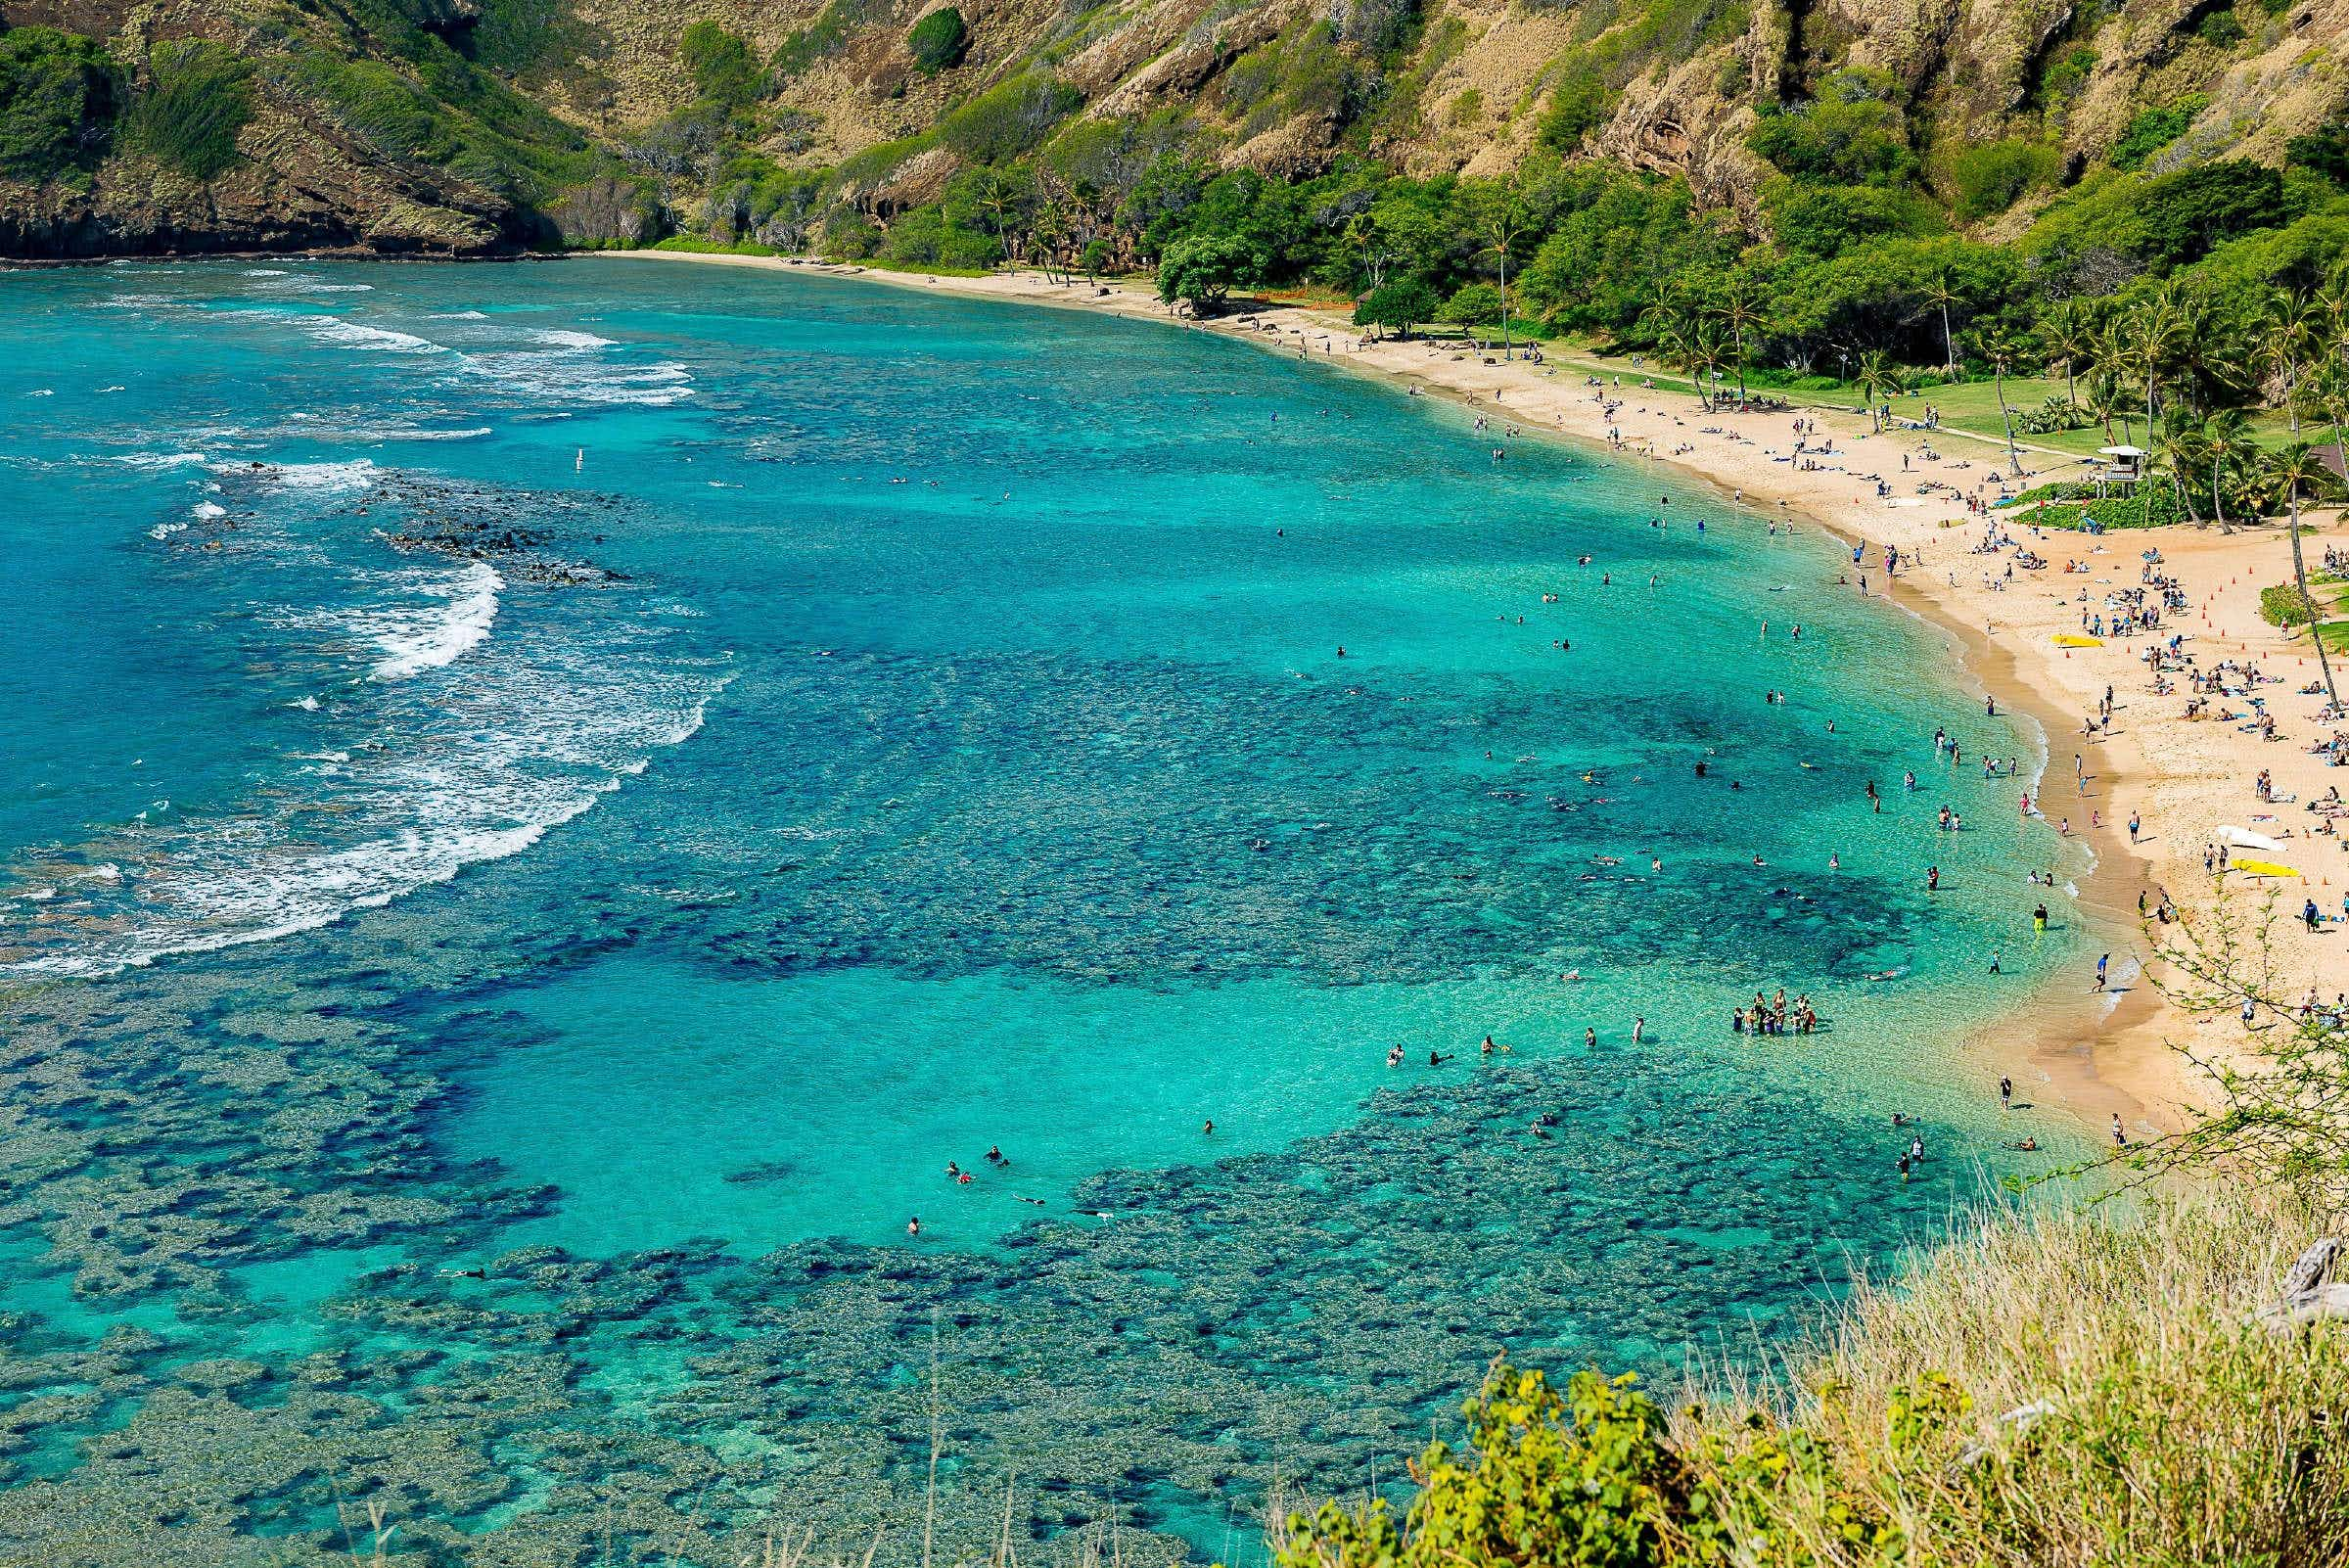 Hawaii is set to be the first US state to ban coral-harming sunscreens